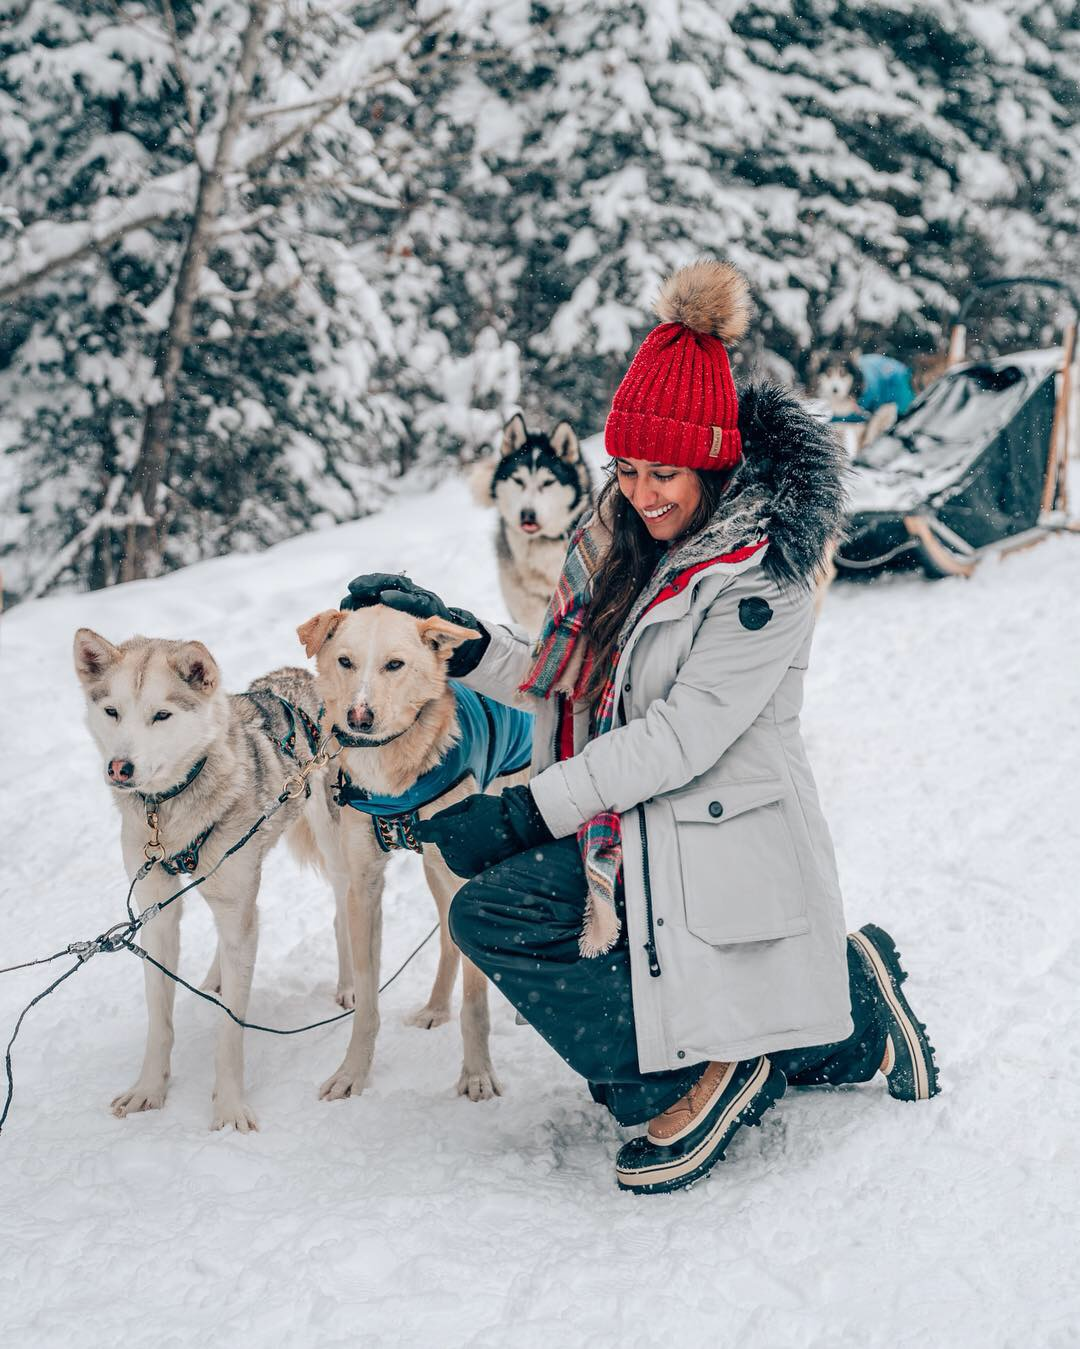 How To Book a Dog Sledding Tour in Banff, Alberta, Canada